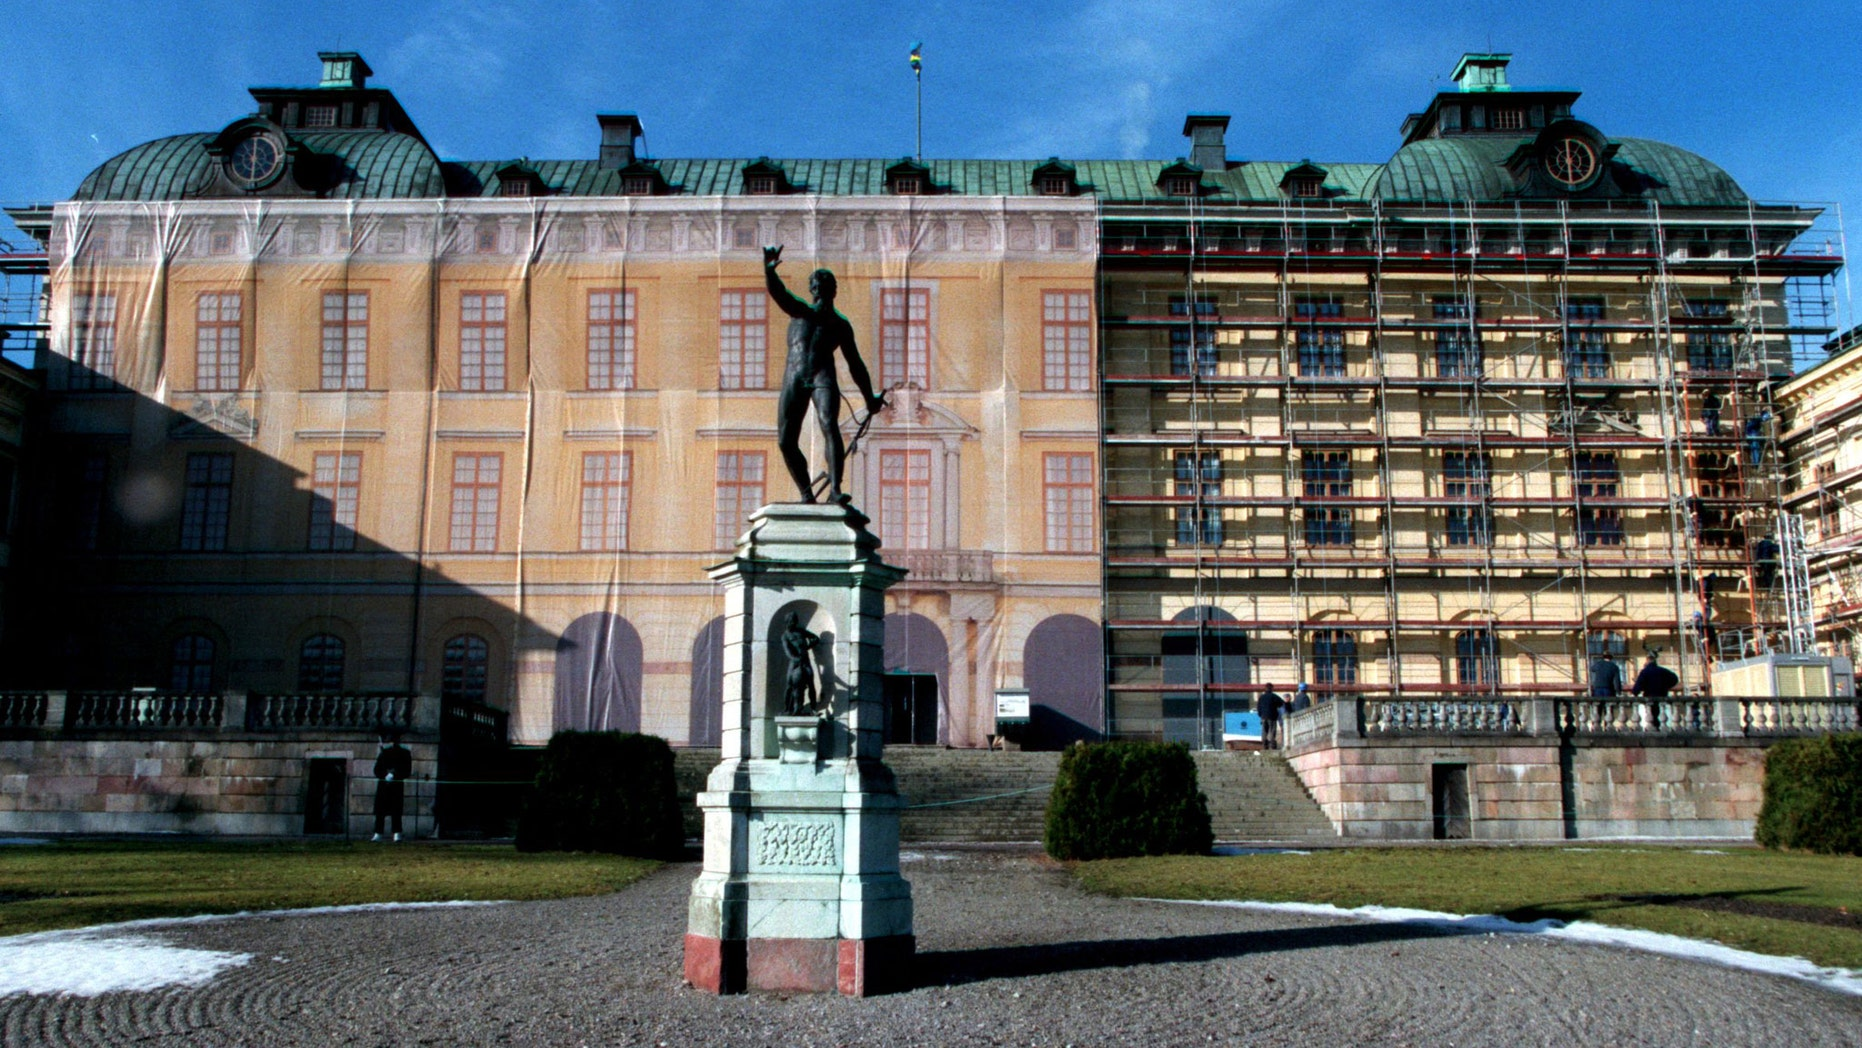 The home of the Swedish Royal family, The Drottningholm Royal palace just outside Stockholm, underwent a facade restoration in 1999 (pictured). Today, a member of the royal family says a friendly ghost roams the halls.